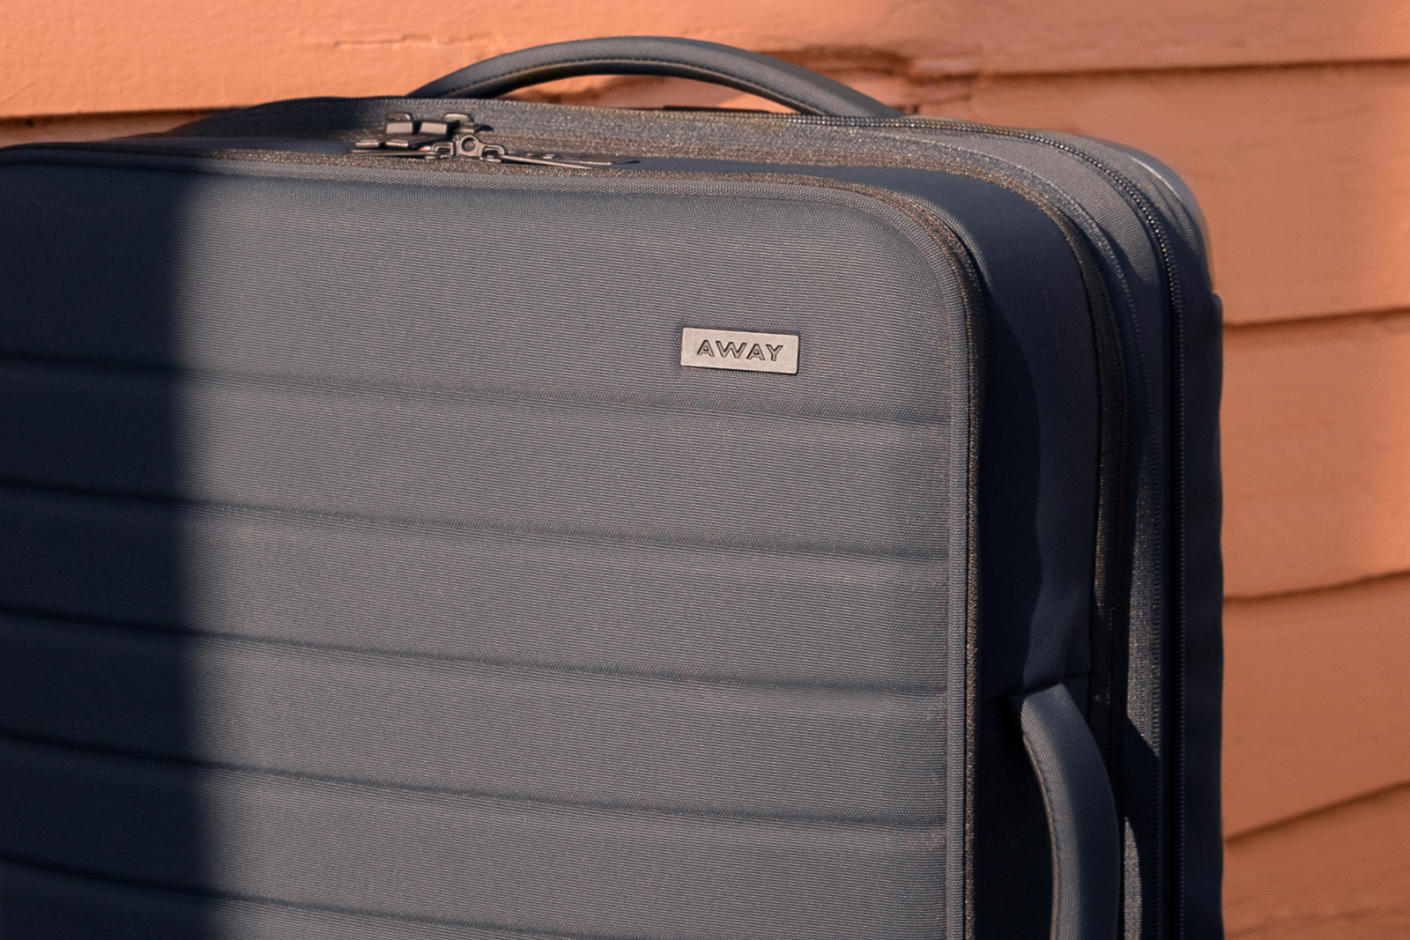 Top portion of a grey Away softsided carry-on suitcase.